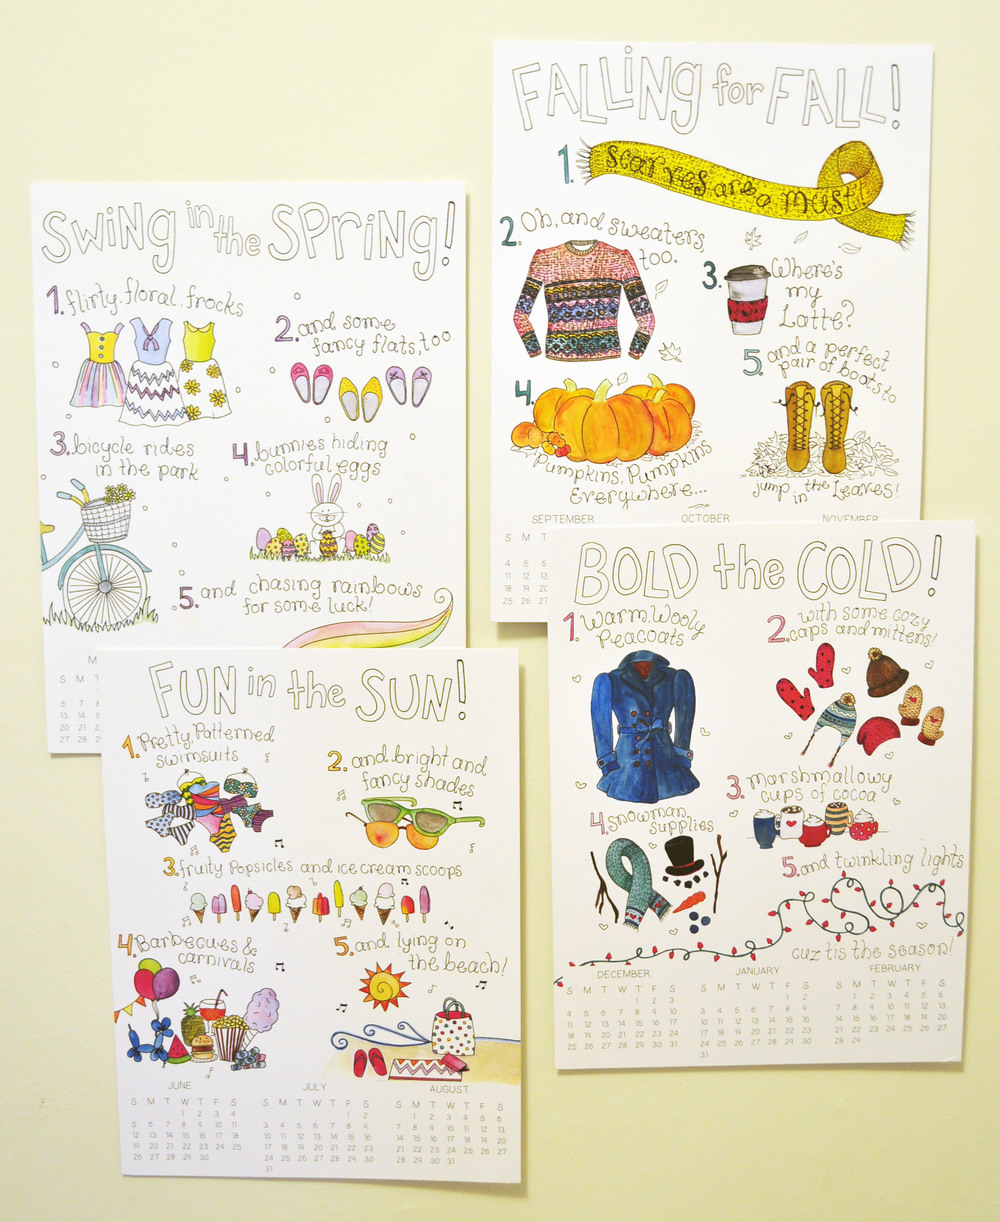 2016 Seasonal Calendar                      The Little Things!